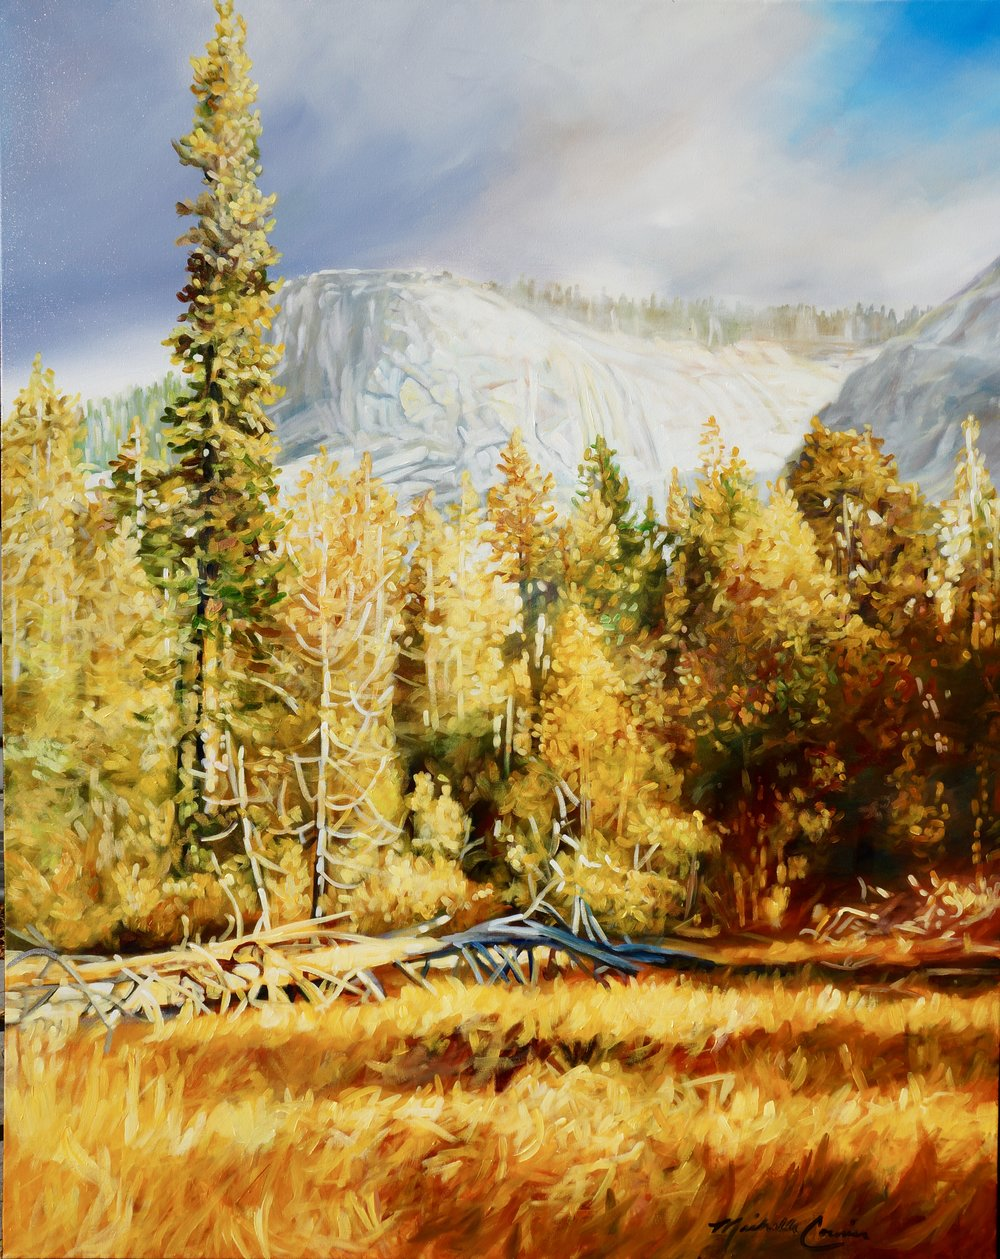 TUOLUMNE MEADOWS 48x60 inches acrylic on canvas  $9,300